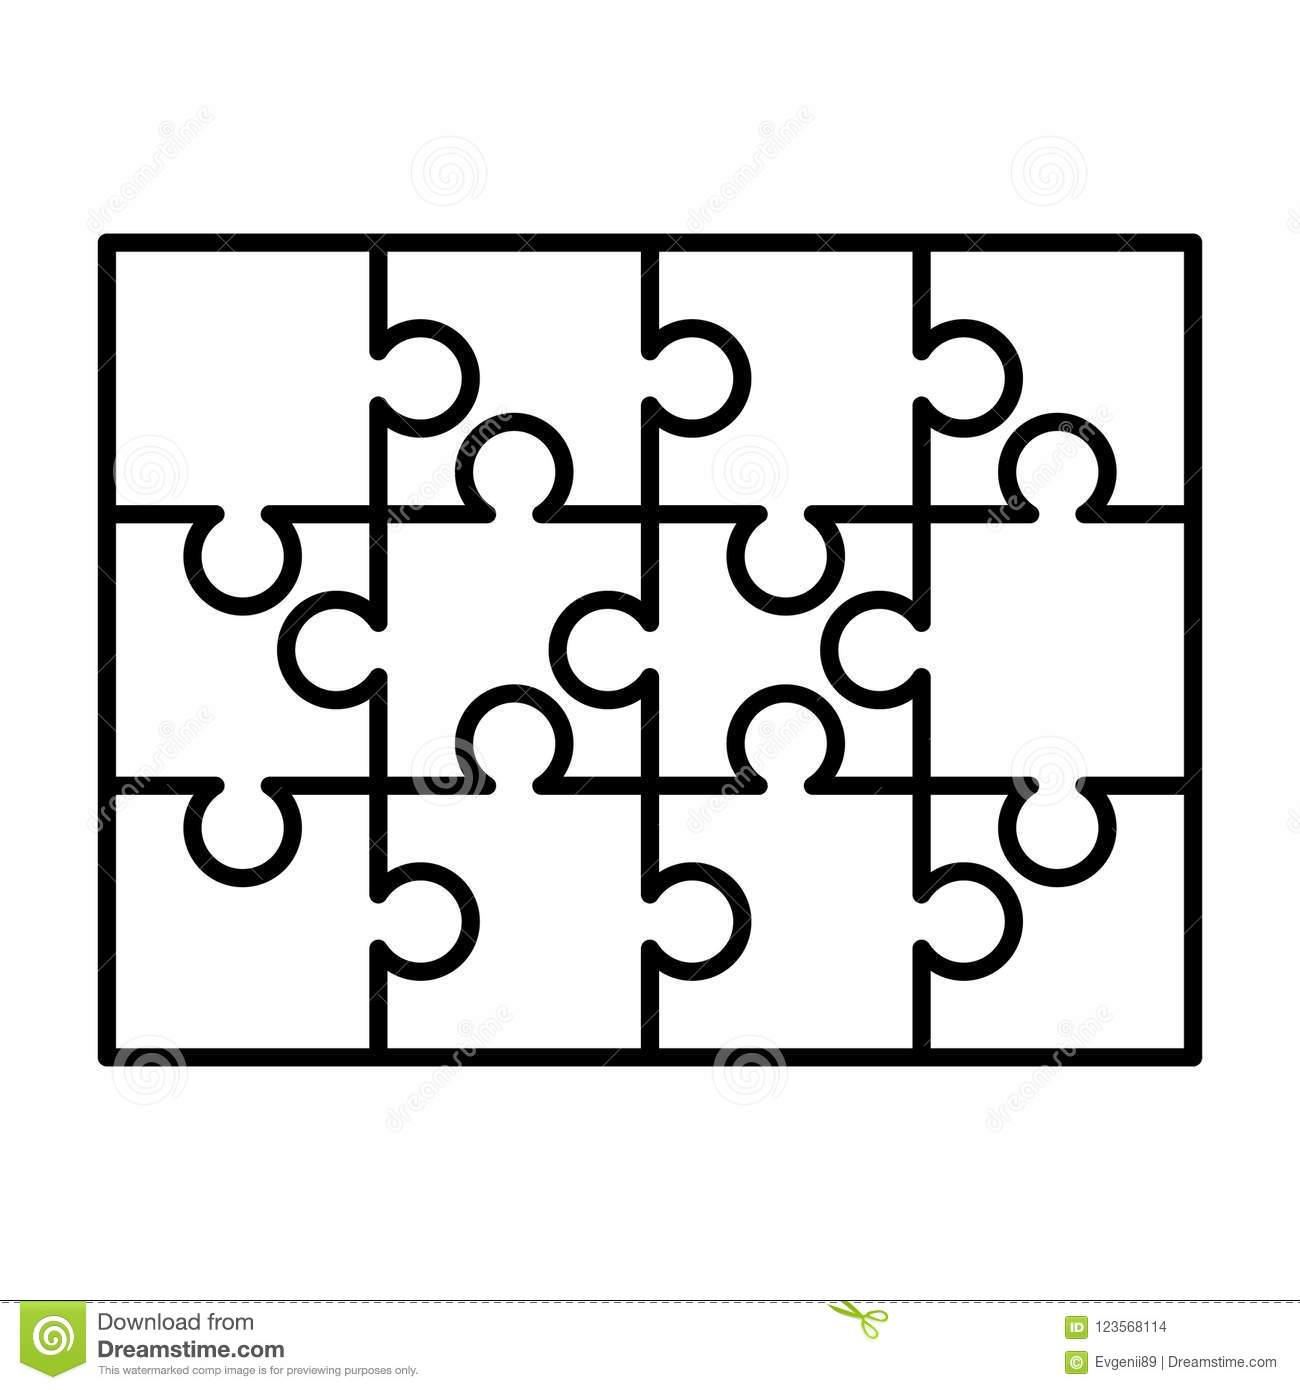 12 White Puzzles Pieces Arranged In A Rectangle Shape Jigsaw Puzzle